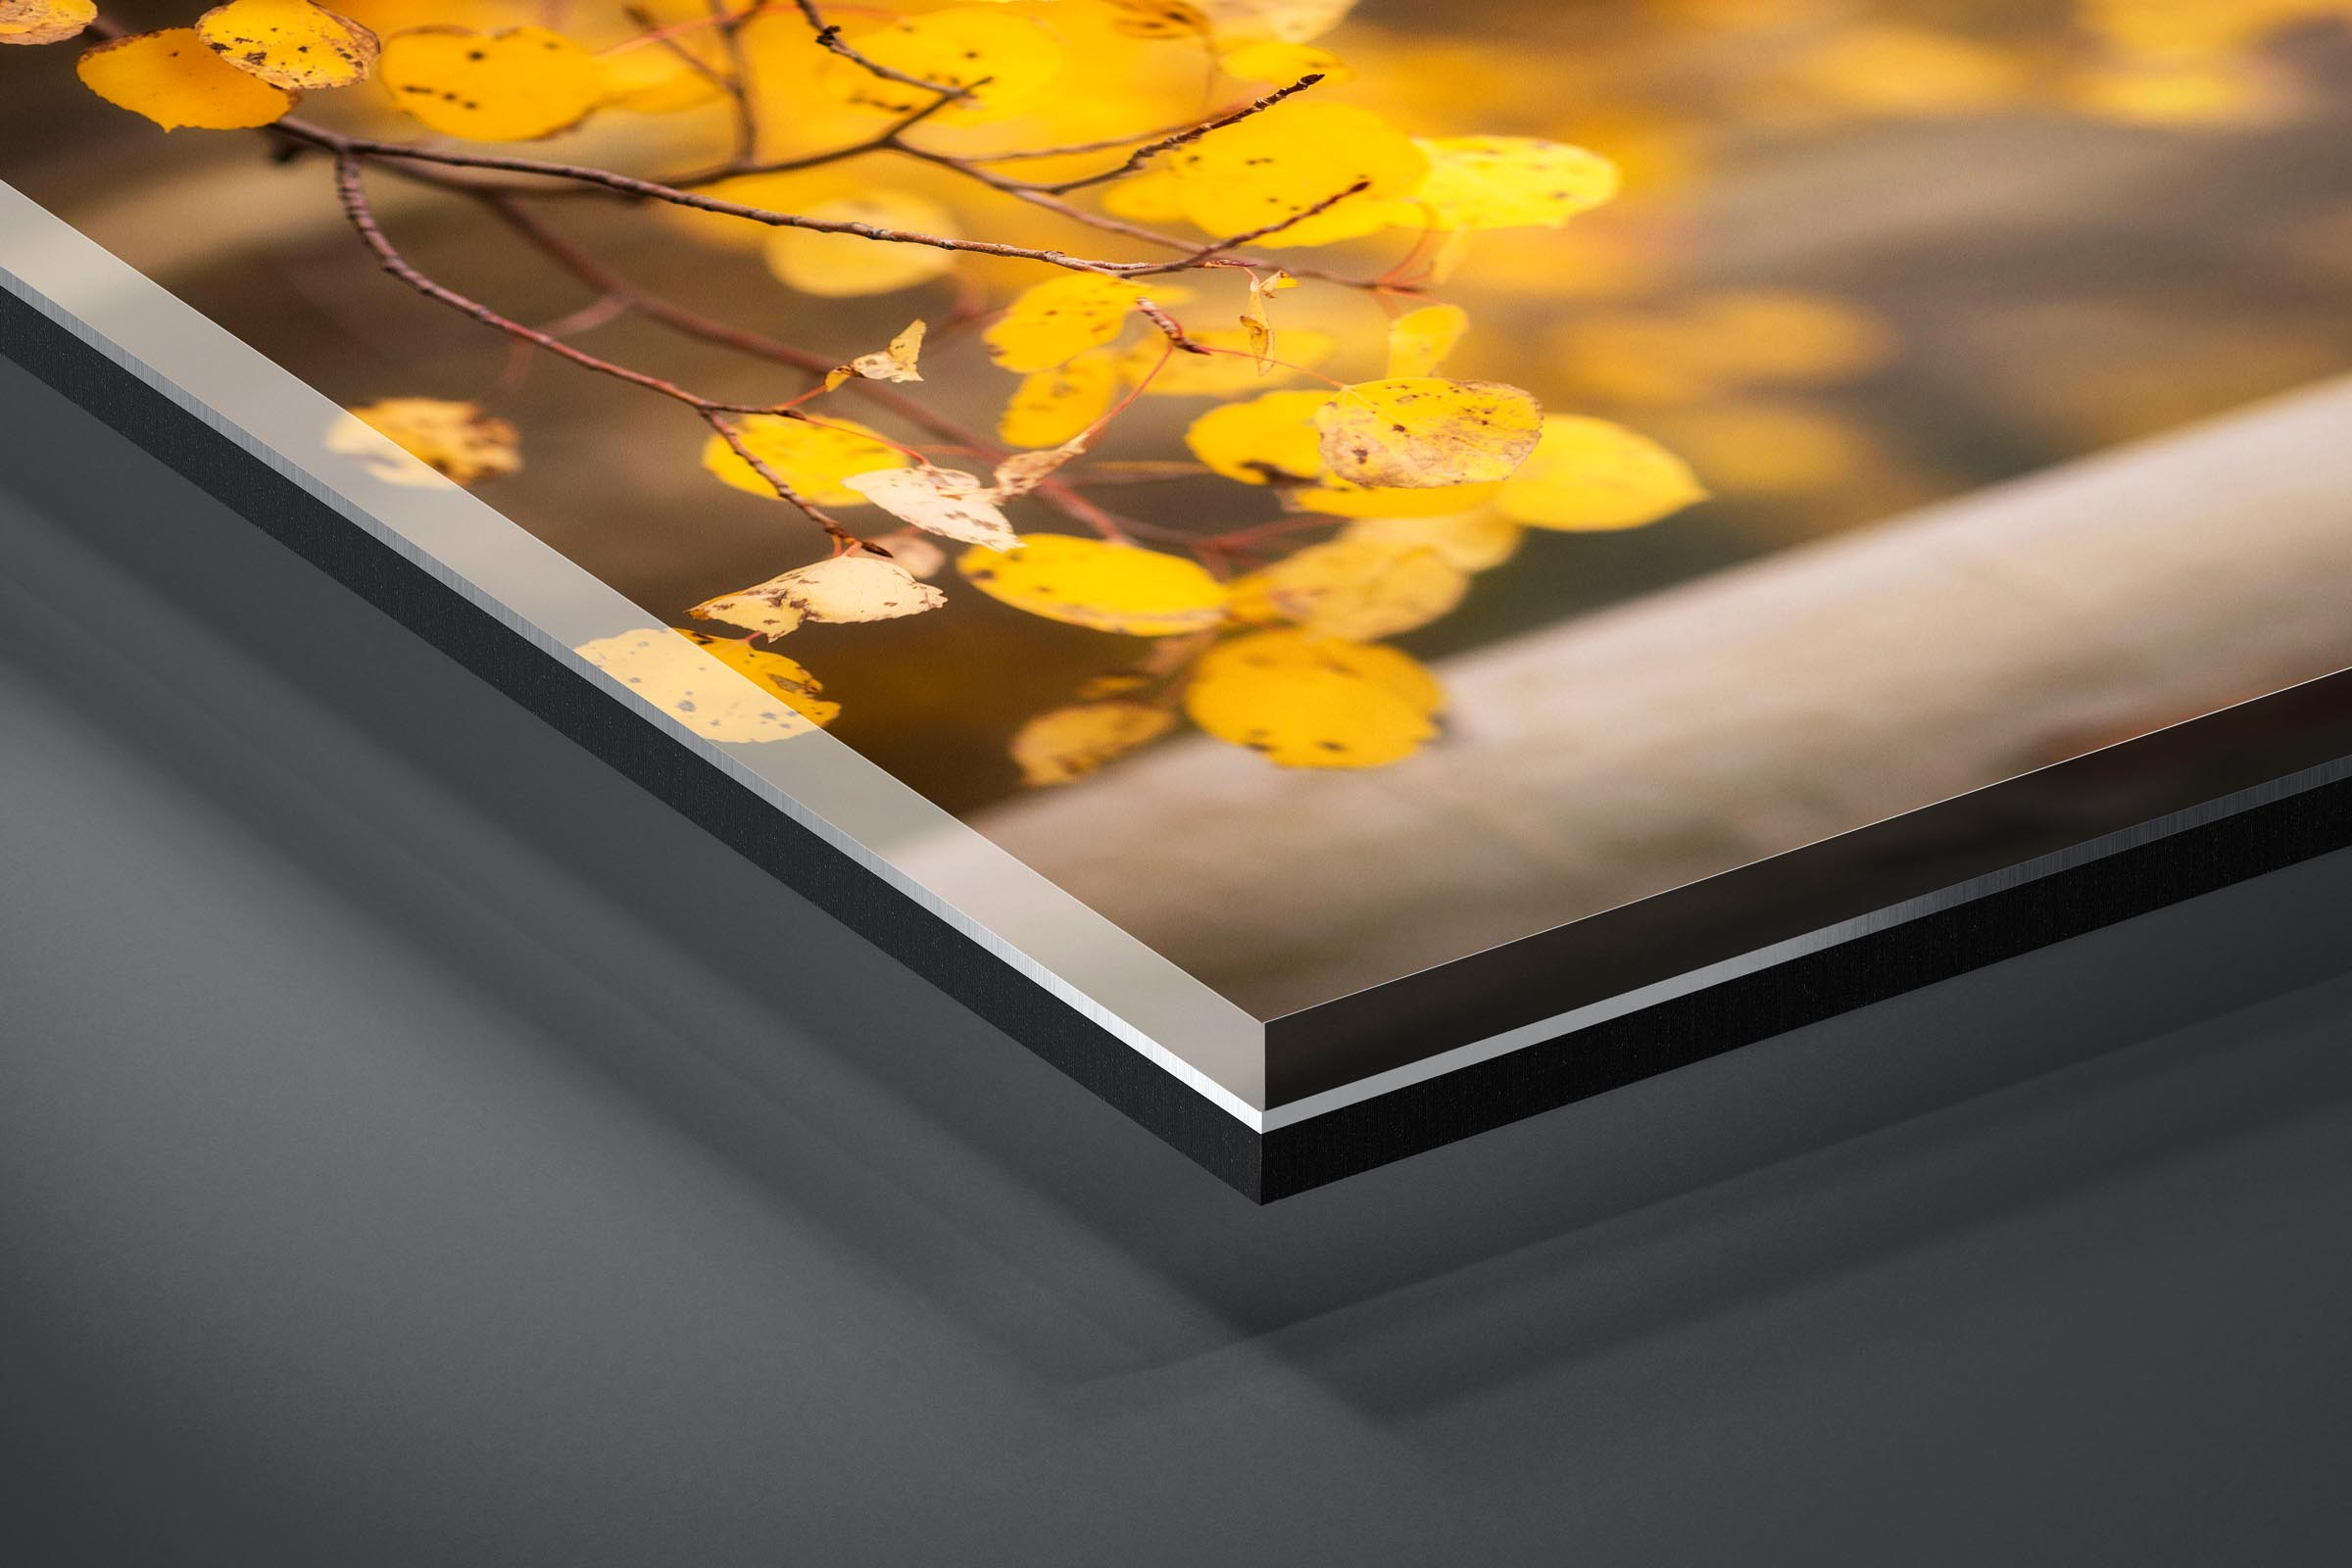 Fine art limited edition acrylic print of Aspen Leaves in Aspen, Colorado by Brent Goldman Photography